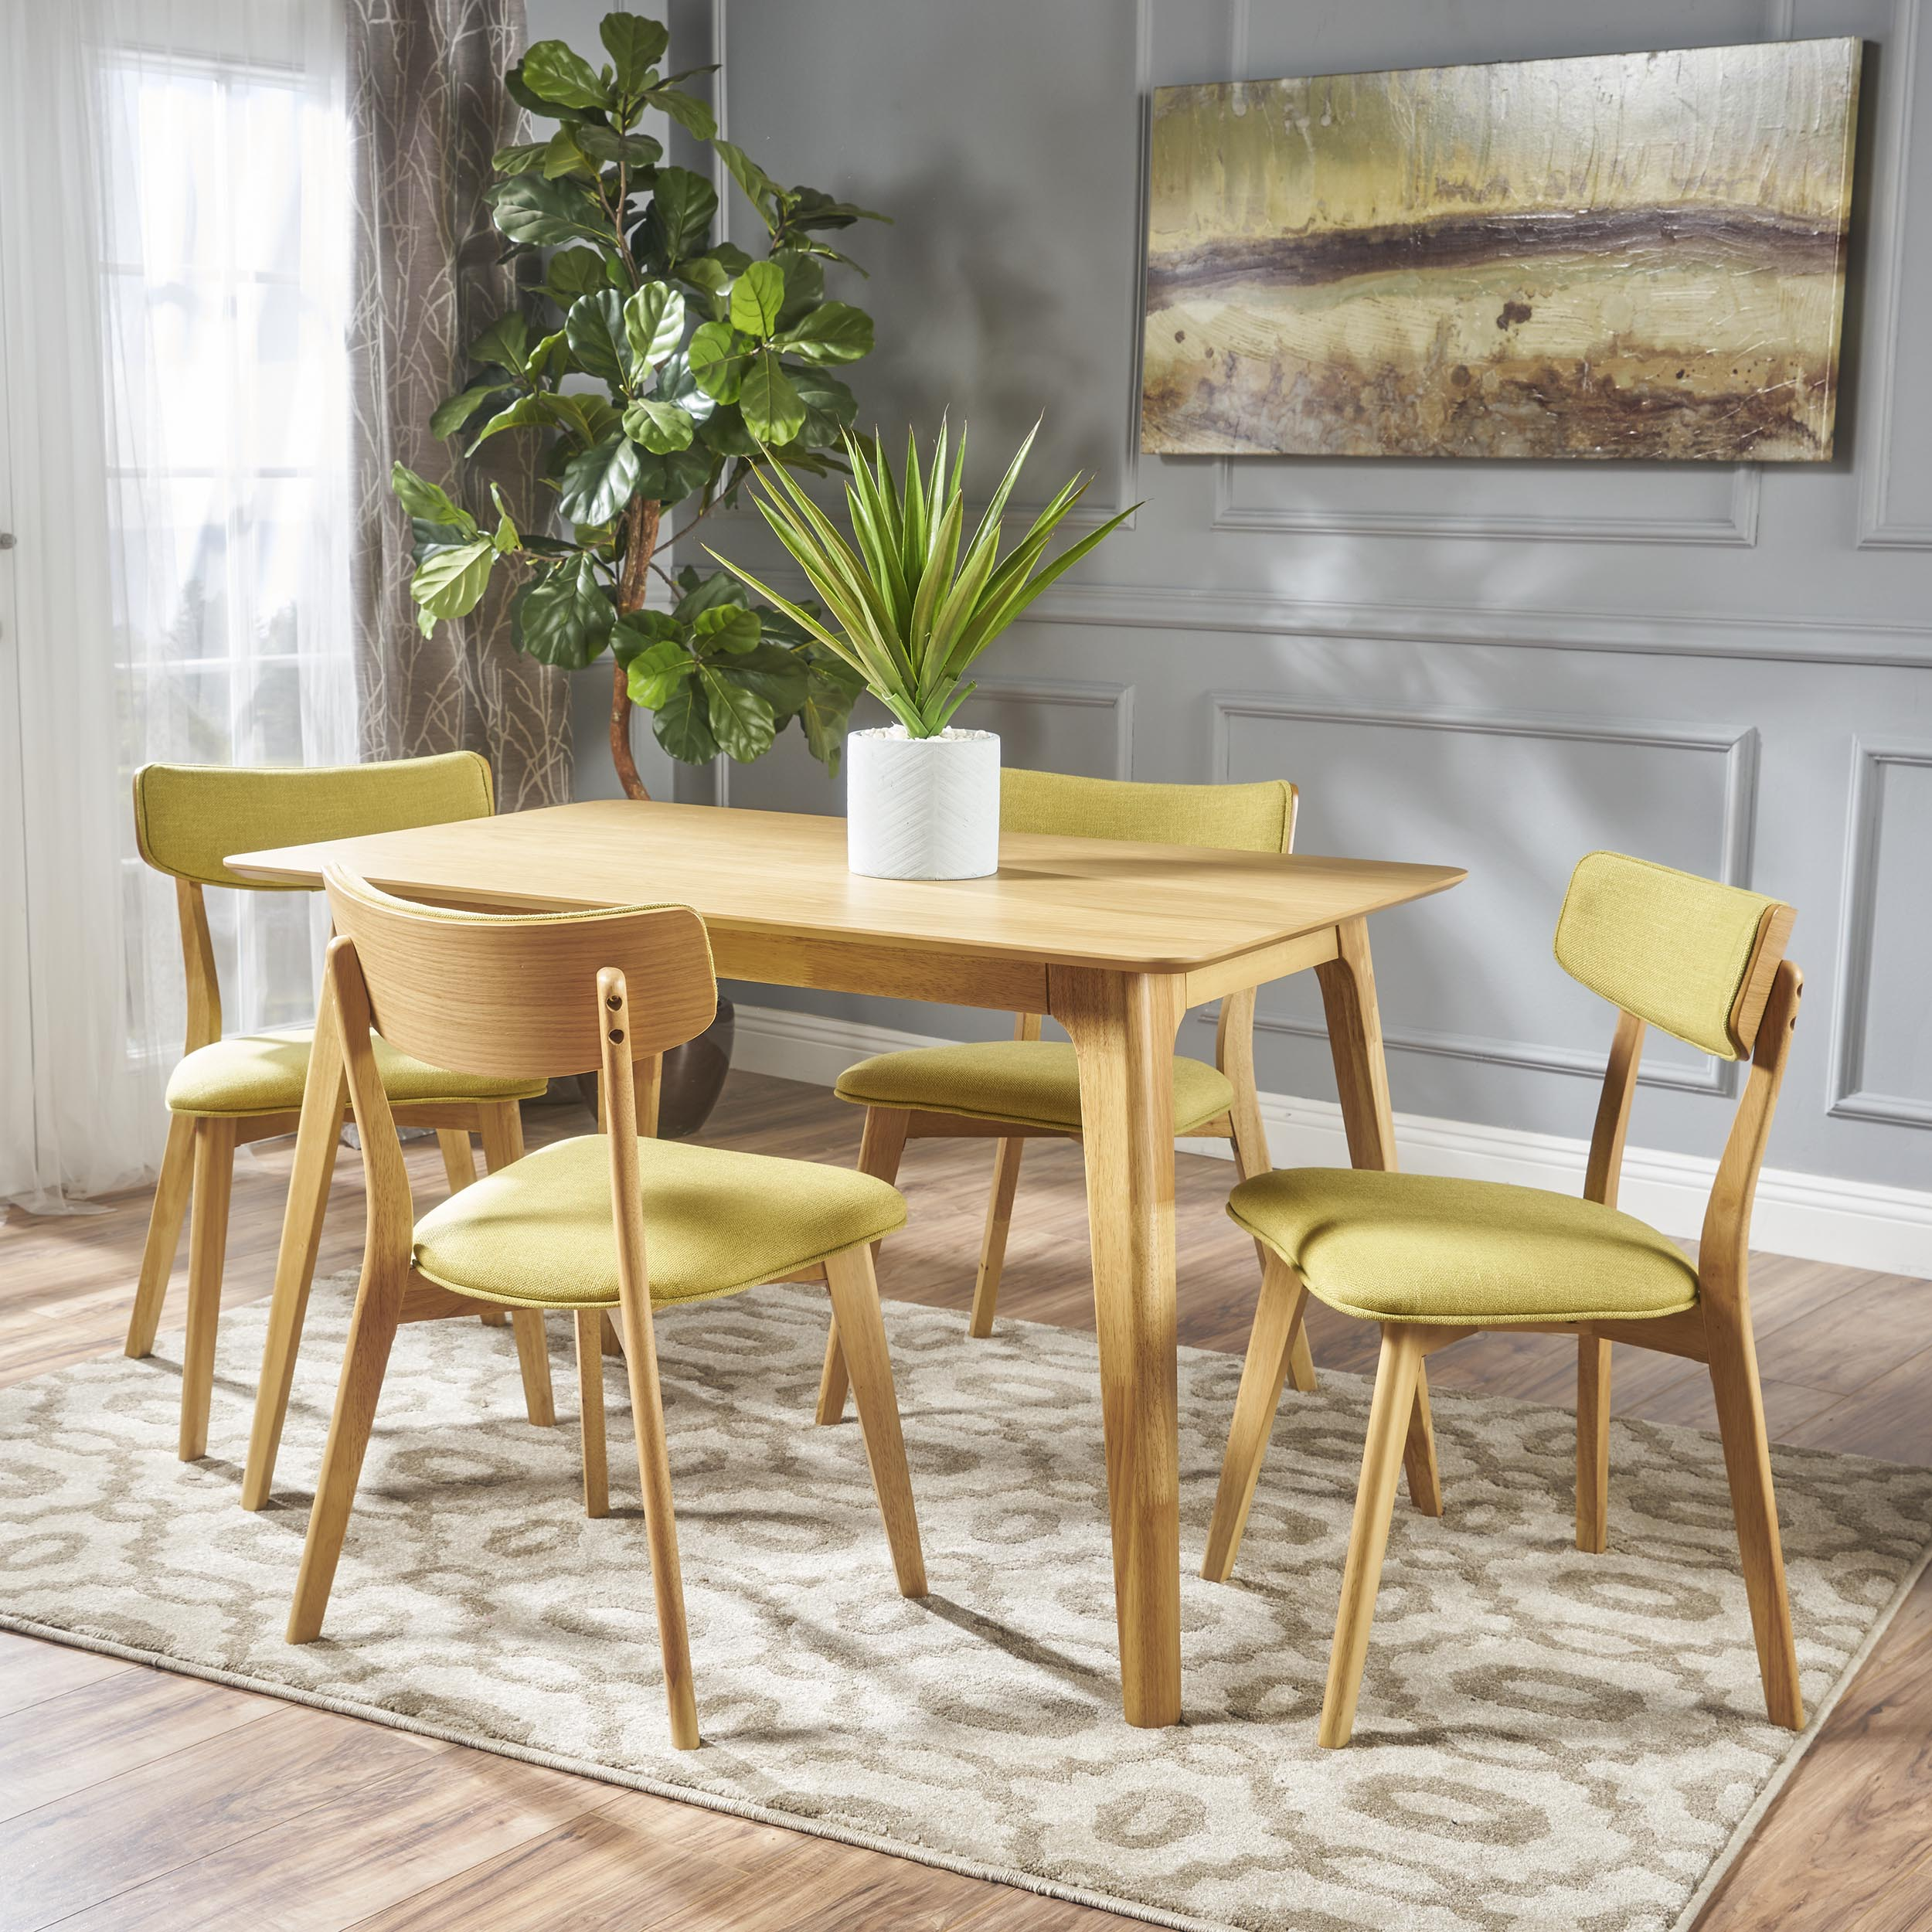 Meanda Mid Century 5 Piece Wood Dining Set with Fabric Chairs, Natural Oak and Green Tea